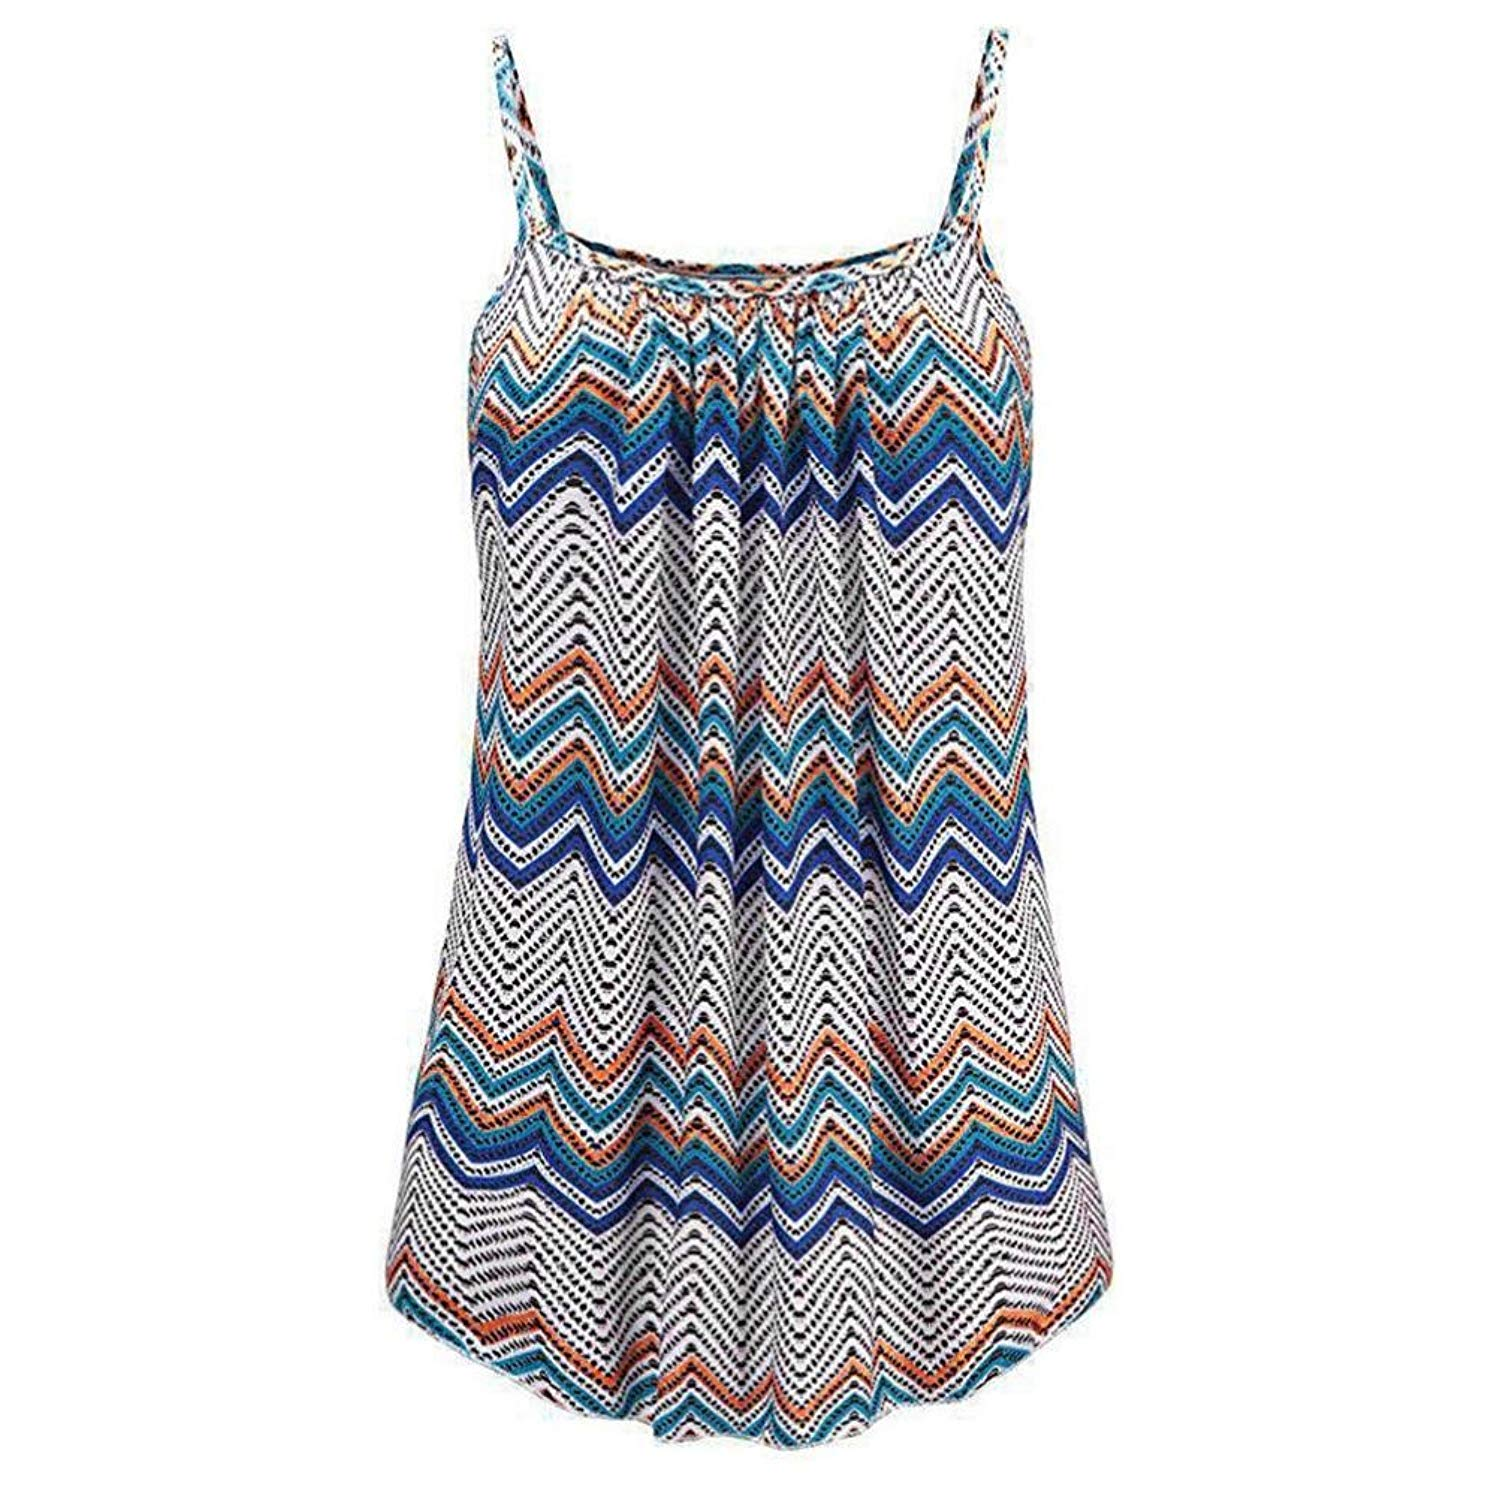 BCDshop Tanks Women Lady Casual Print Sleeveless Tank Tops Camis Summer Clothes Shirts Blouse Vest